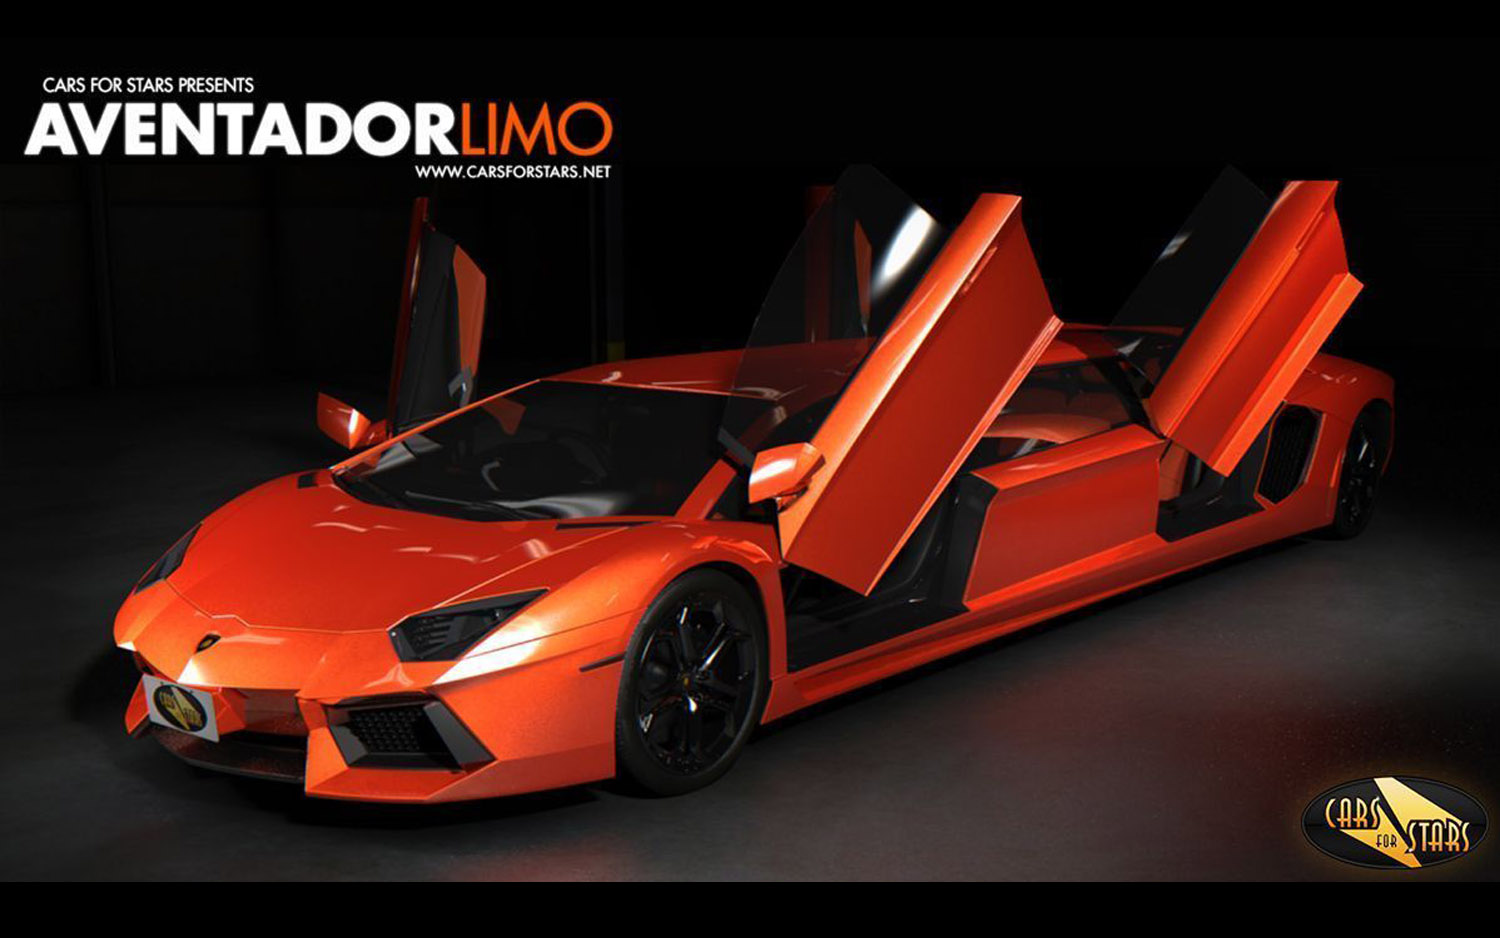 Sport Car Lambo Aventador Limo Verses - Automotive Share